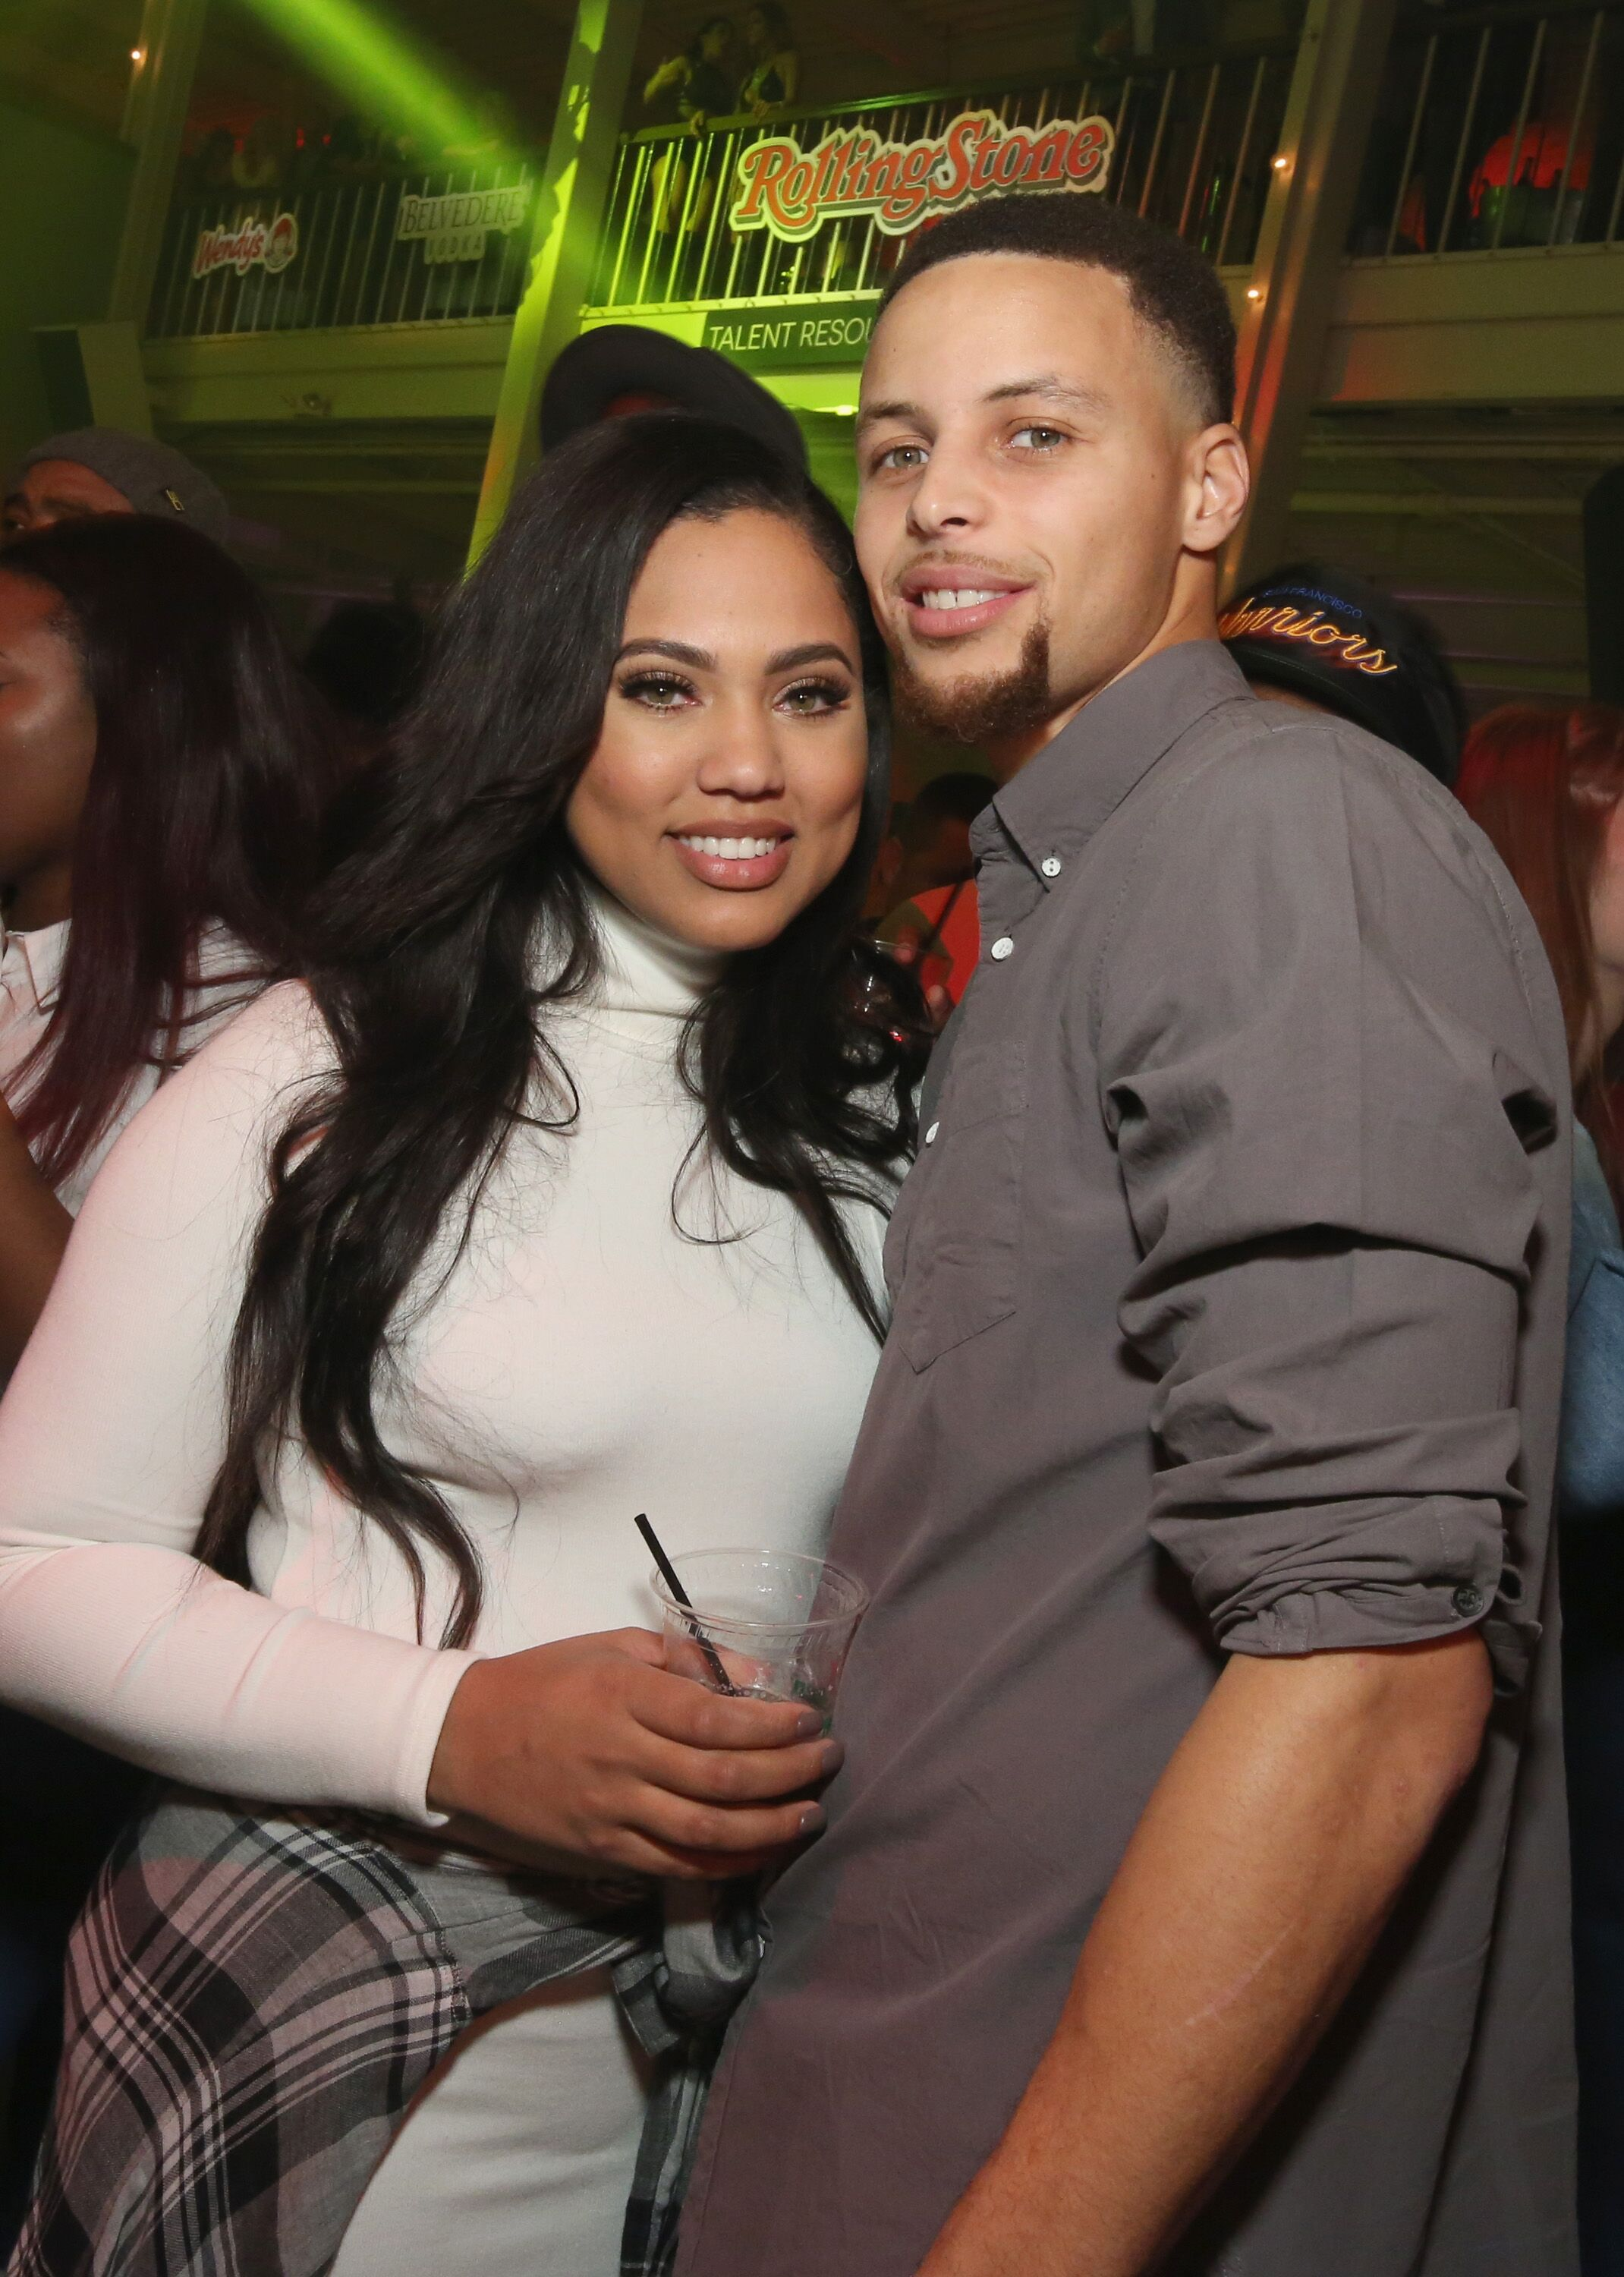 Ayesha Curry and NBA player Stephen Curry attend Rolling Stone Live SF with Talent Resources on February 7, 2016 in San Francisco, California. | Source: Getty Images